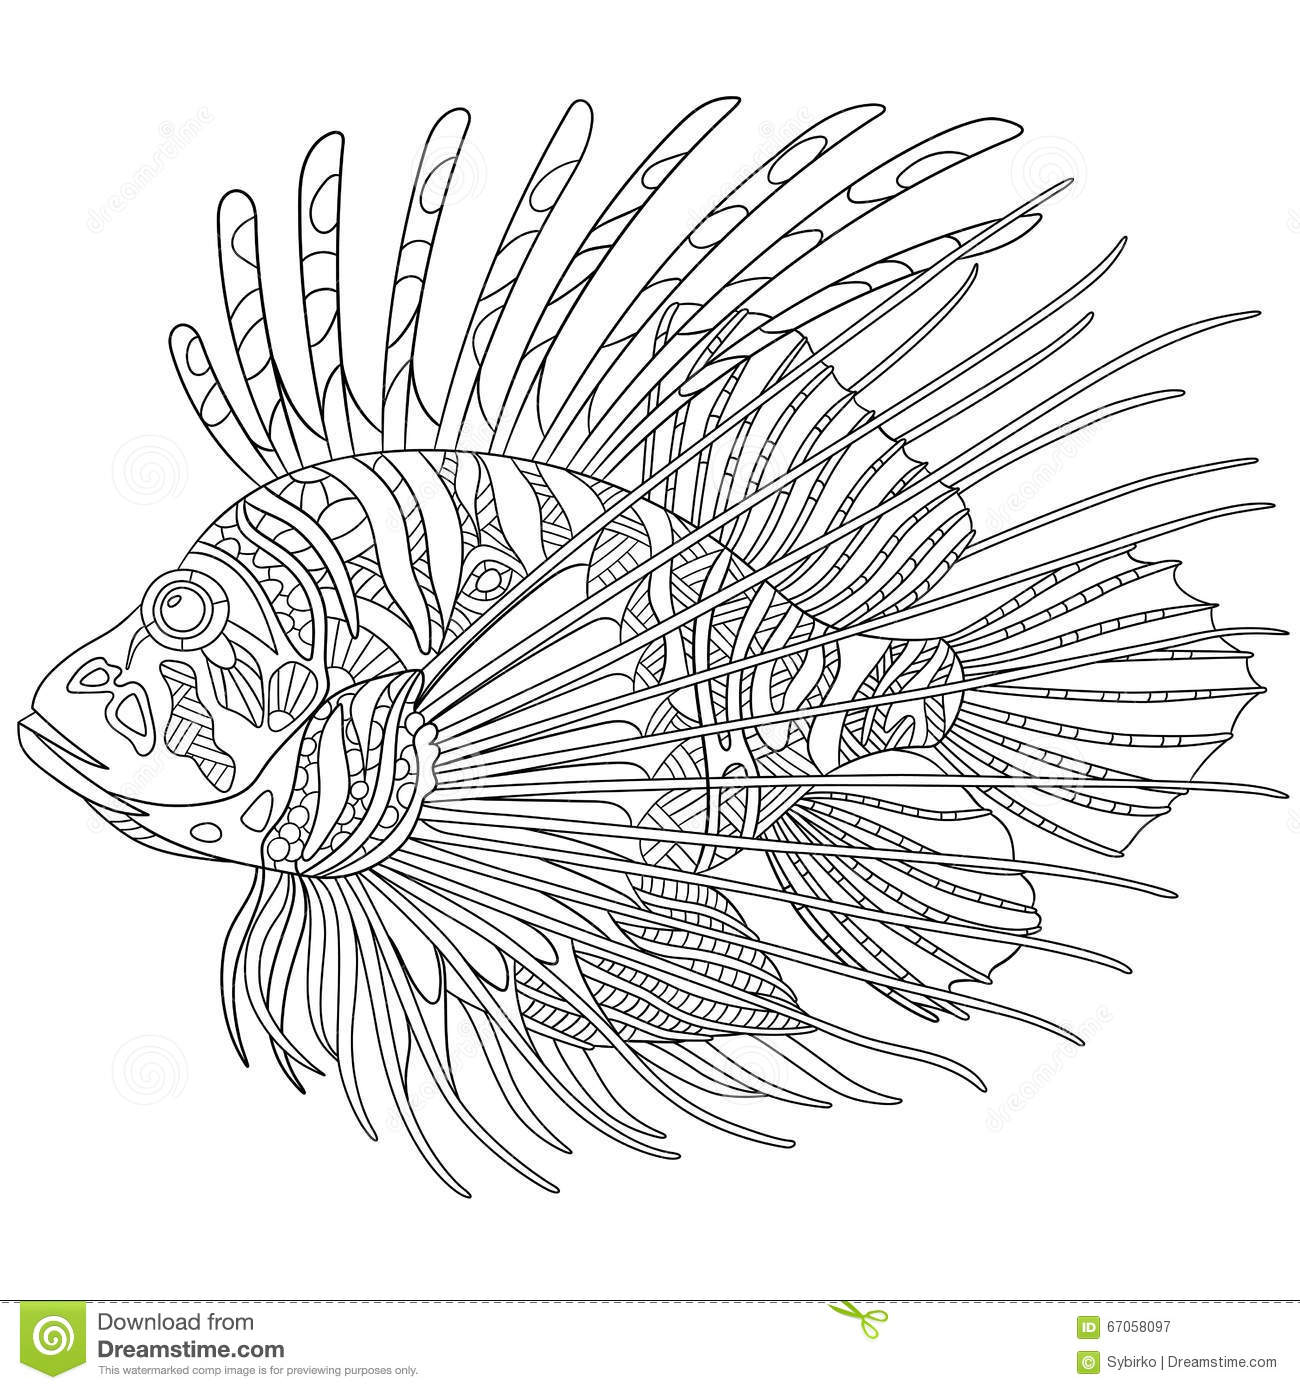 Adult Best Lionfish Coloring Page Images cute zentangle stylized zebrafish lionfish stock vector image 67058097 gallery images